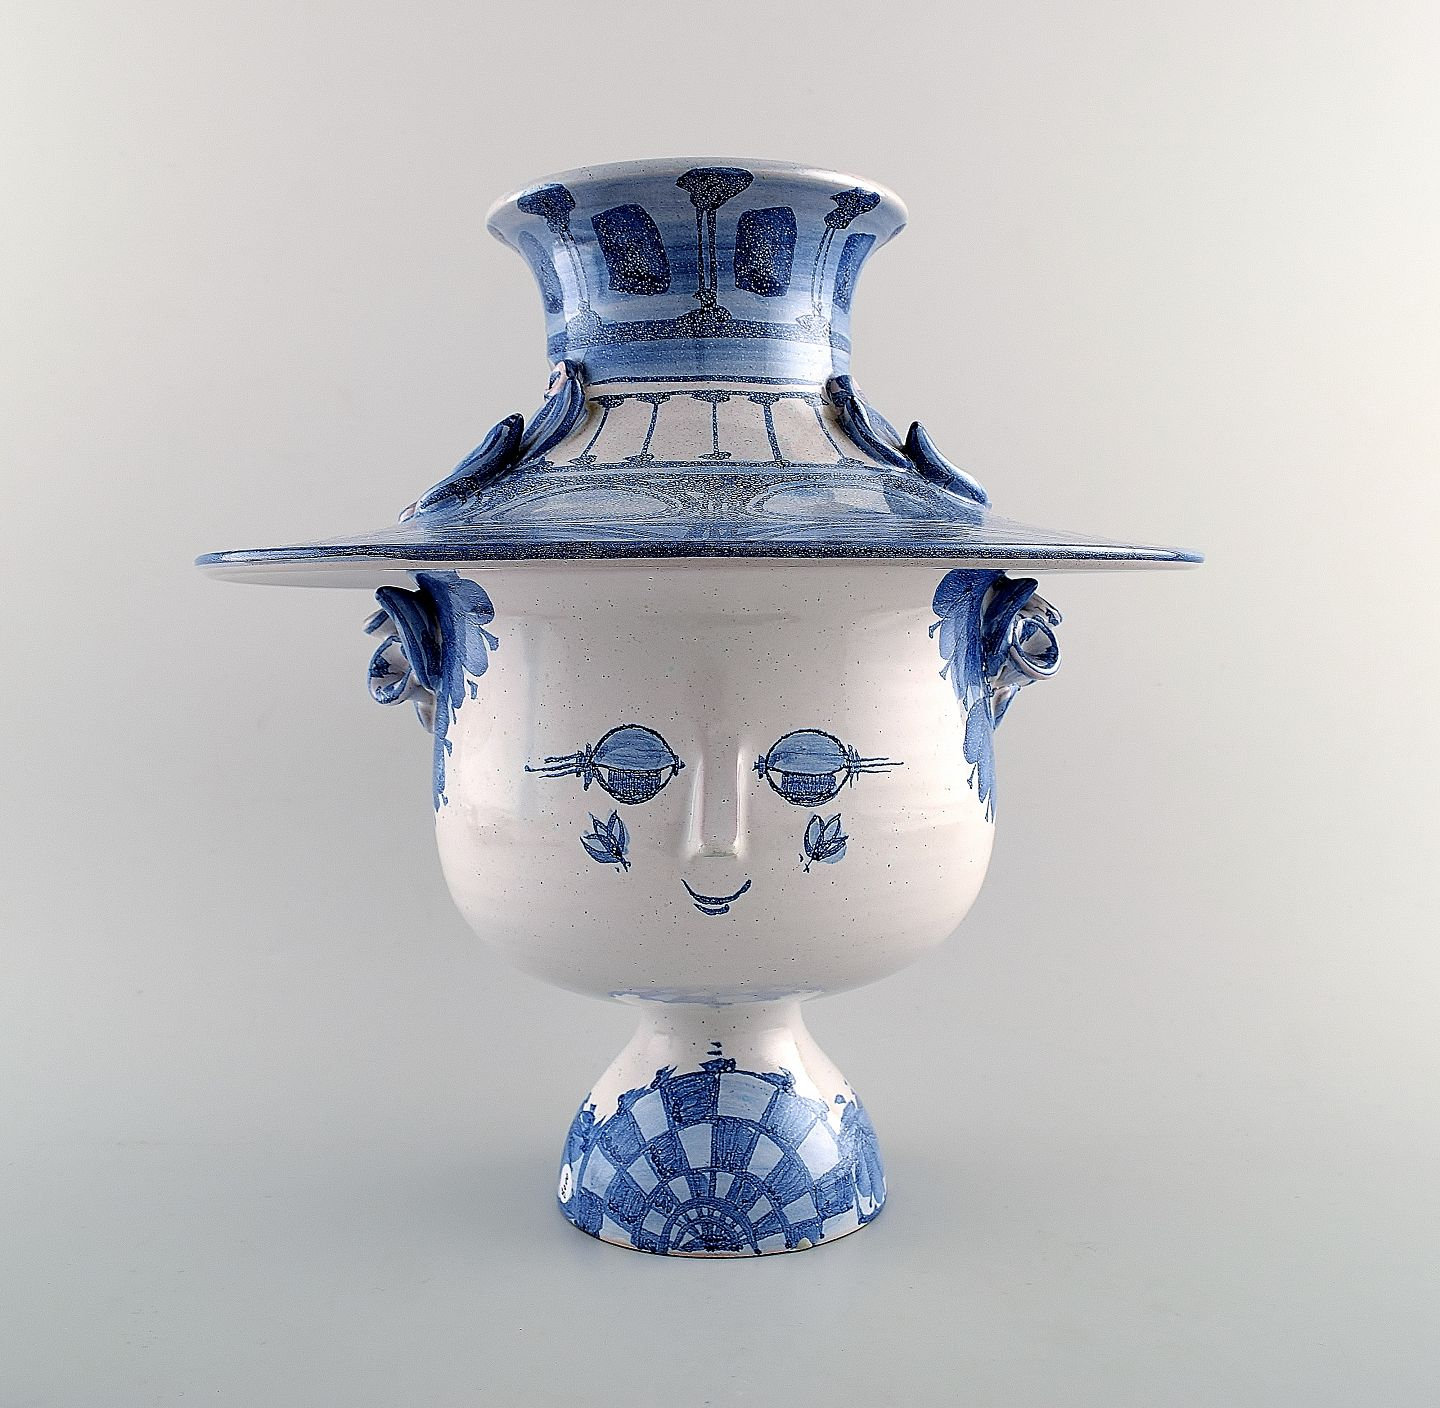 Worldantique large bjrn wiinblad the blue house figure large bjrn wiinblad the blue house figure with lid in form of a hat by bjorn wiinblad reviewsmspy